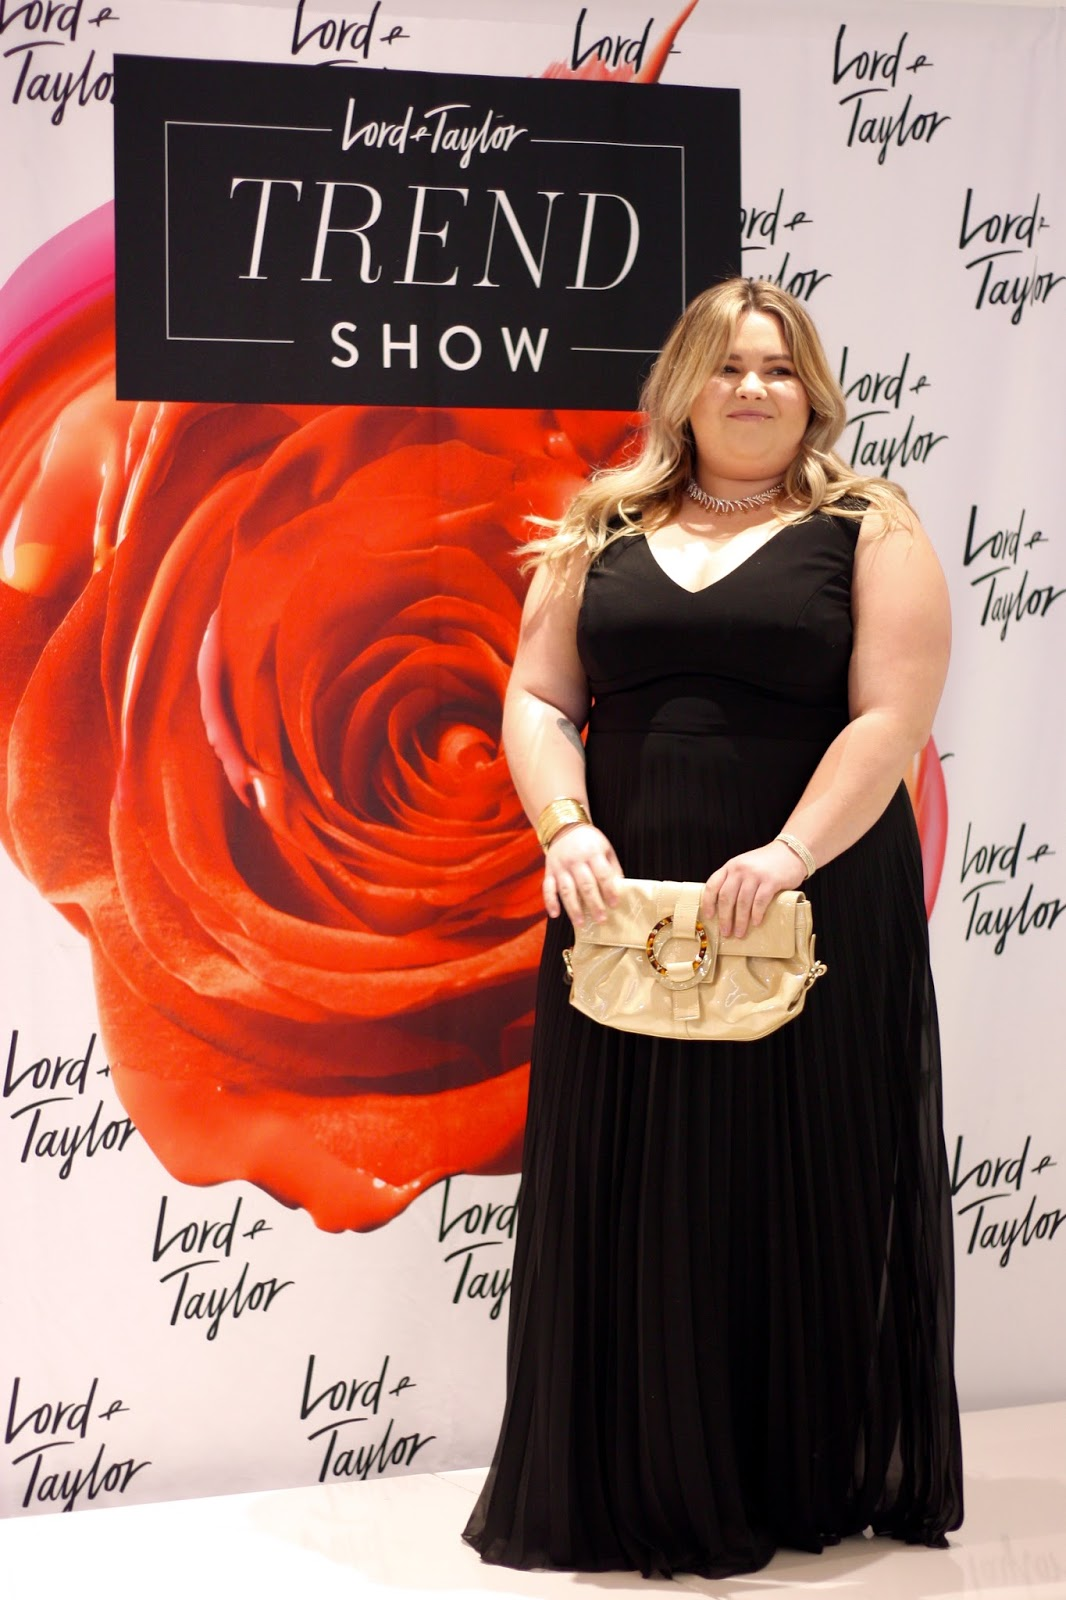 lord & taylor, chicago, oak brook, natalie craig, natalieinthecity, plus size fashion blogger, curvy, charity day, look good feel better, melony melrose, katherine davis, paul anthony stylist